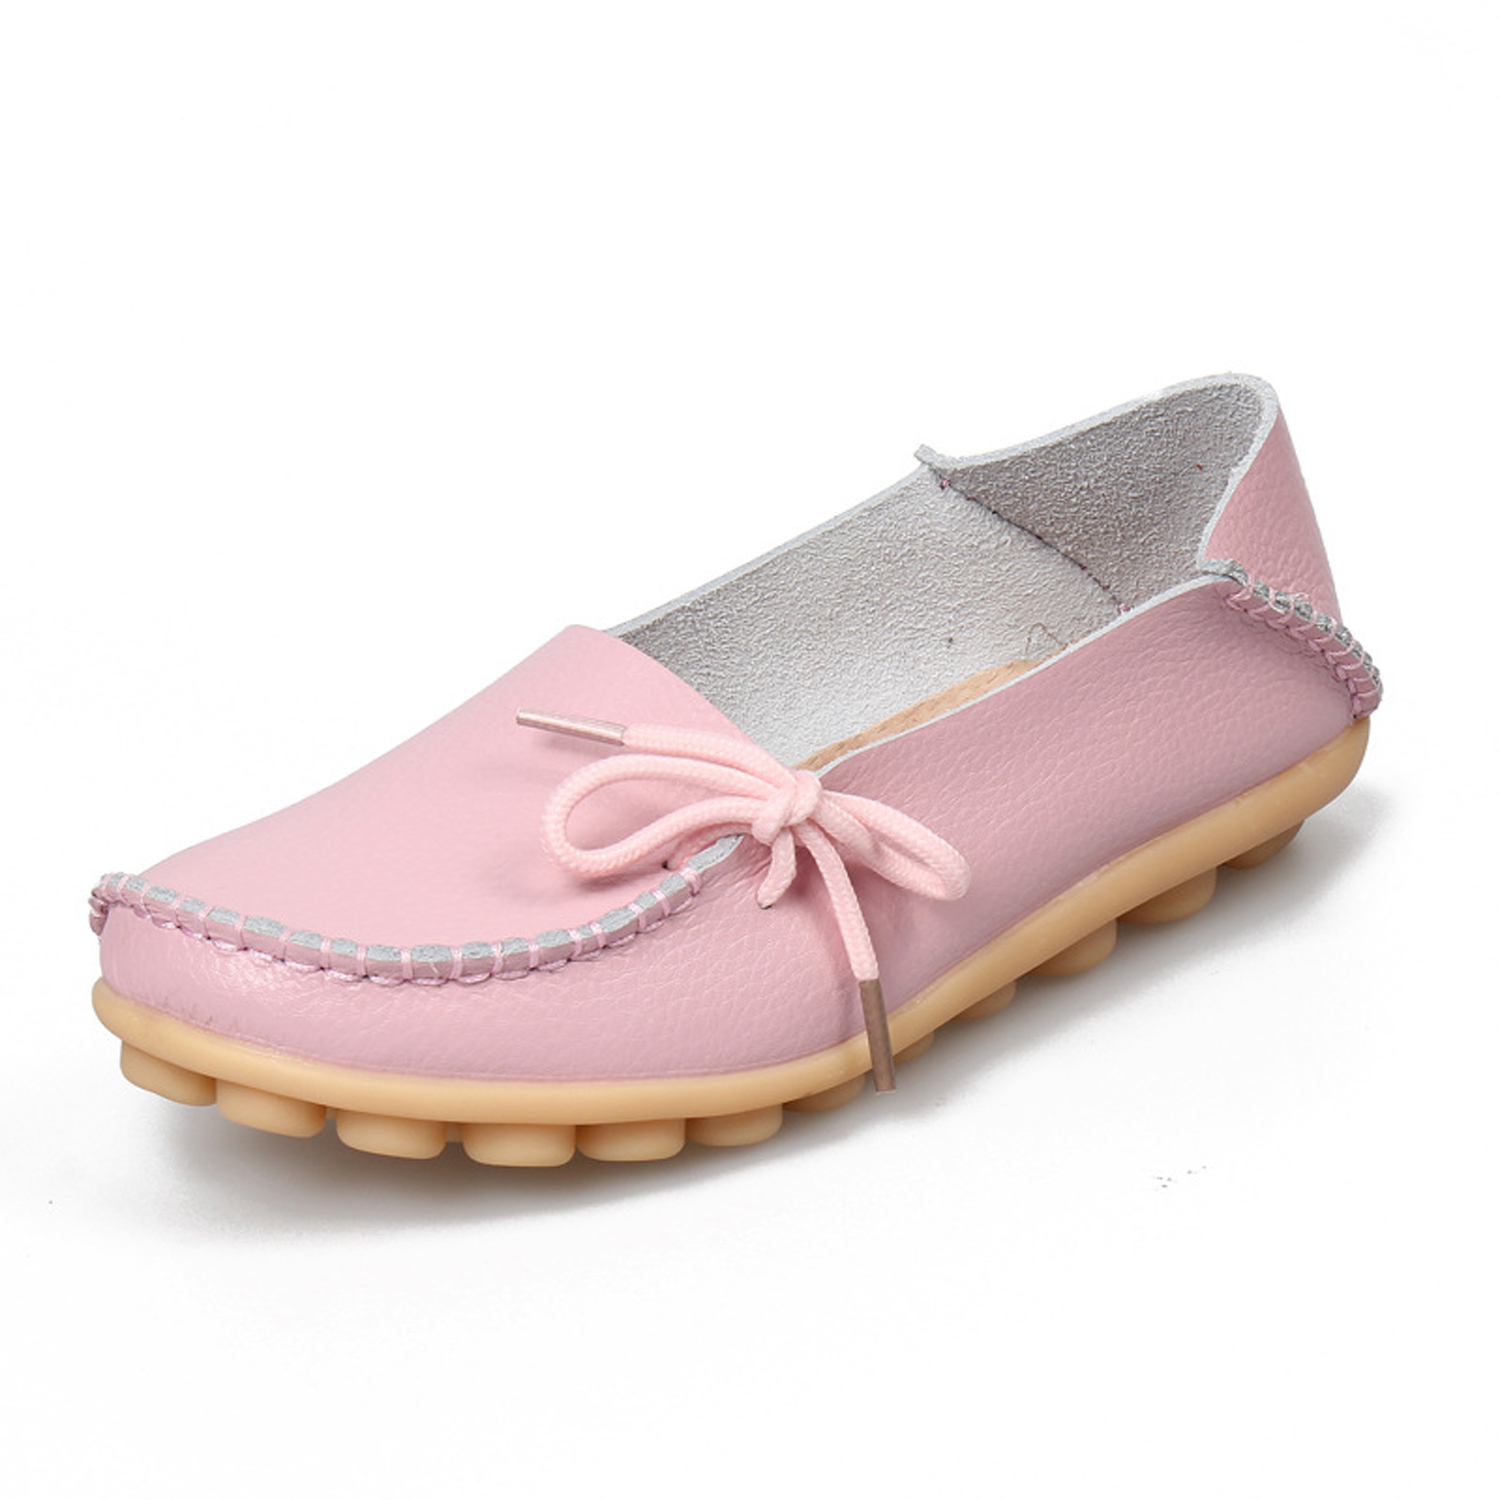 Gaorui 2017 Srping New PU Leather Women Flats Moccasins Loafers Wild  Driving women Casual Shoes Leisure Concise Flat shoes 7713ca970b5c